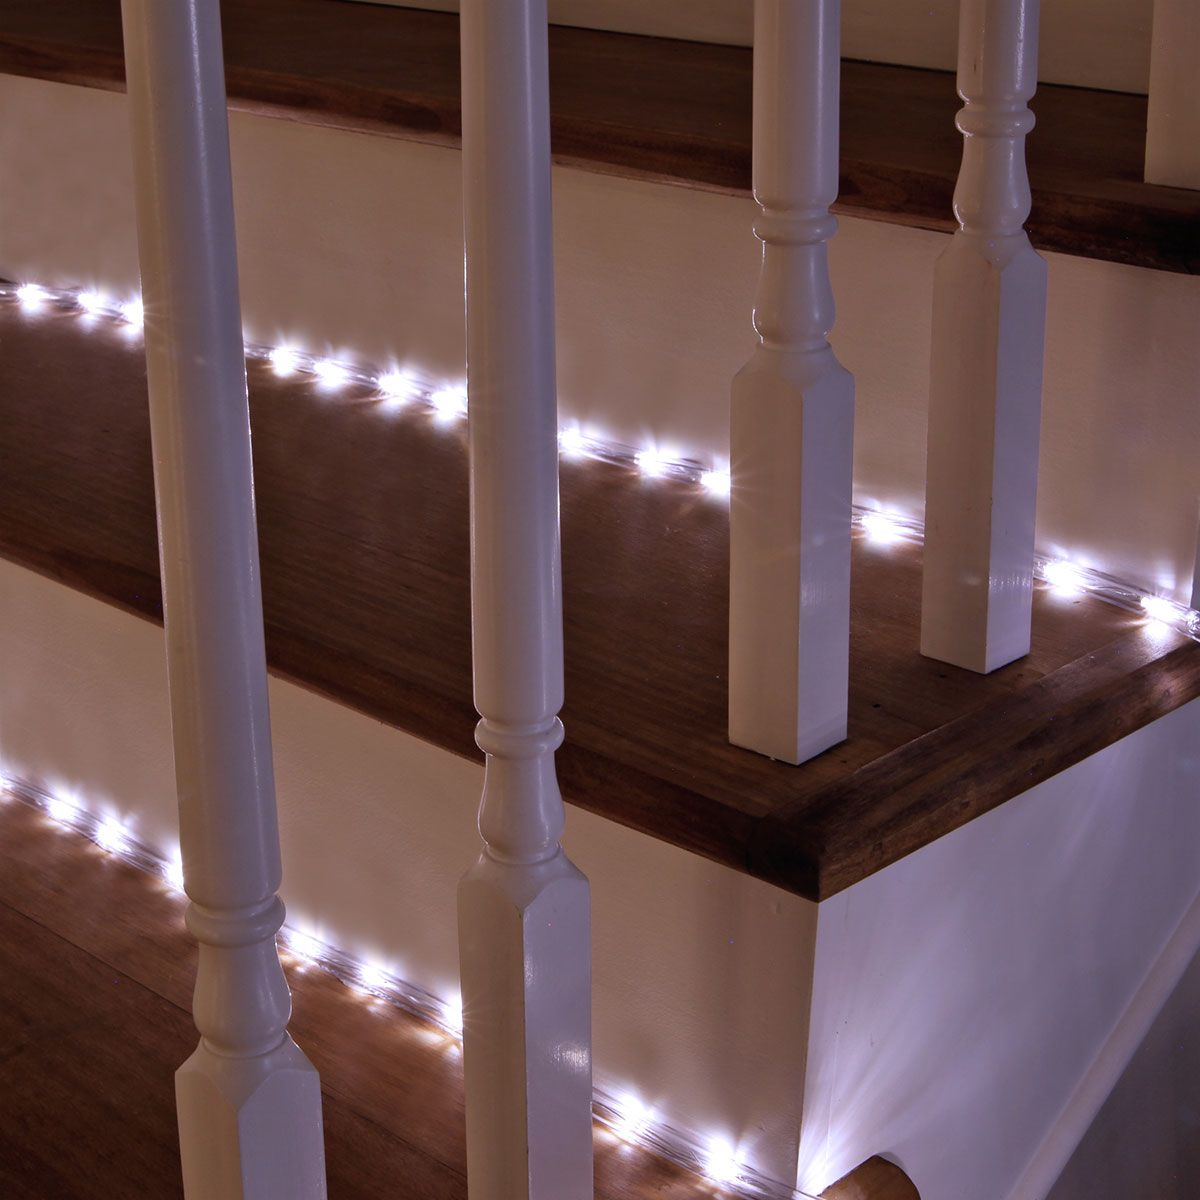 The 100 Warm White Leds Of These Cordless Led Rope Lights Are Ideal For Enhancing Deck Railings Stairs Trees Windows Gazebos And Other Outdoor Objects